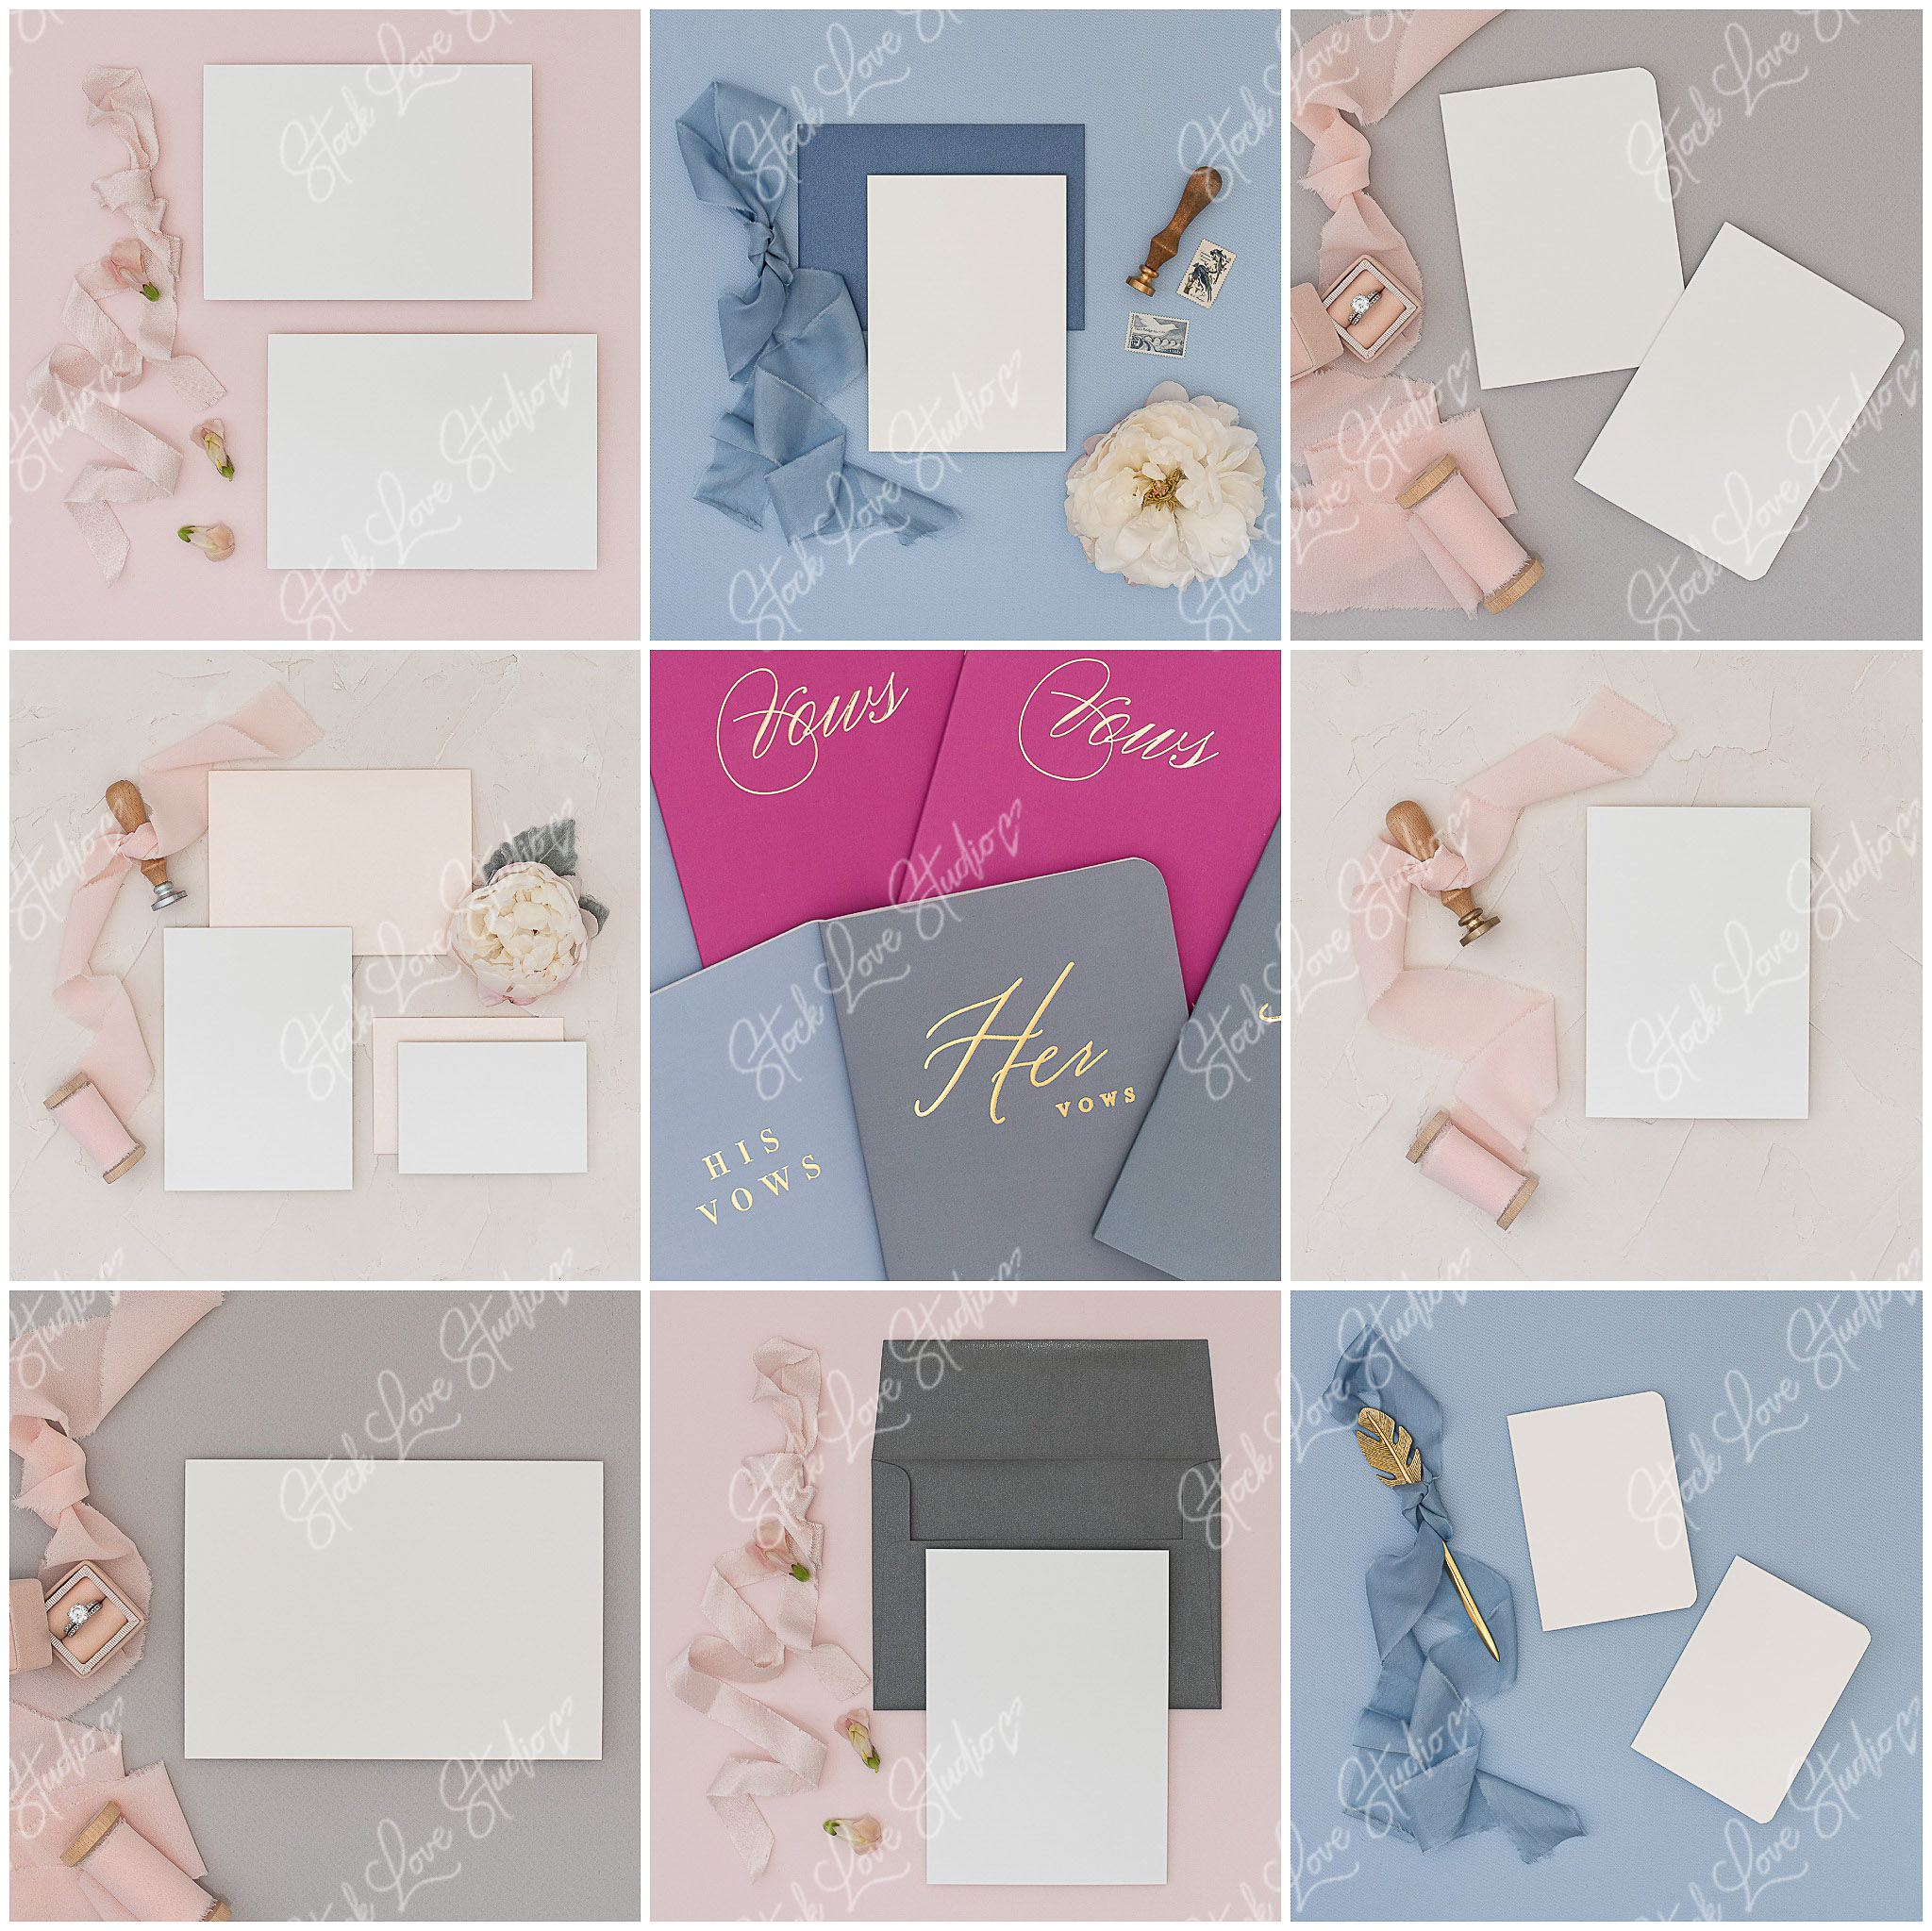 custom_stationery_mockup_0007.jpg